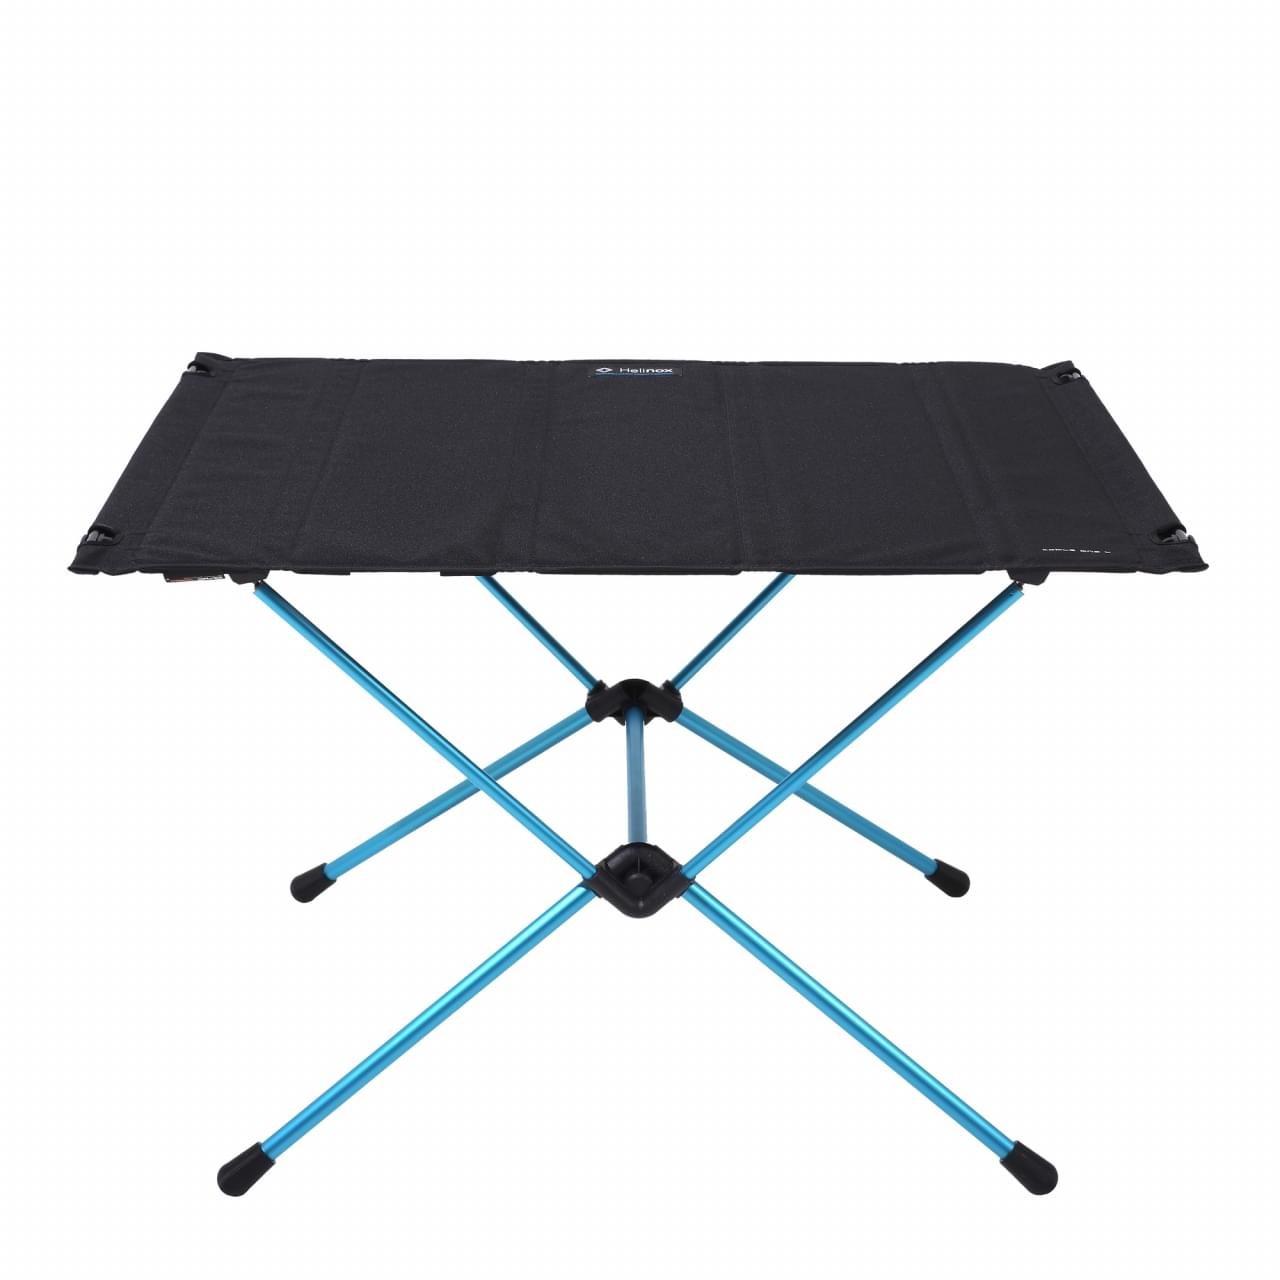 Helinox Table One Hard Top L 76 x 57 cm Lichtgewicht Campingtafel